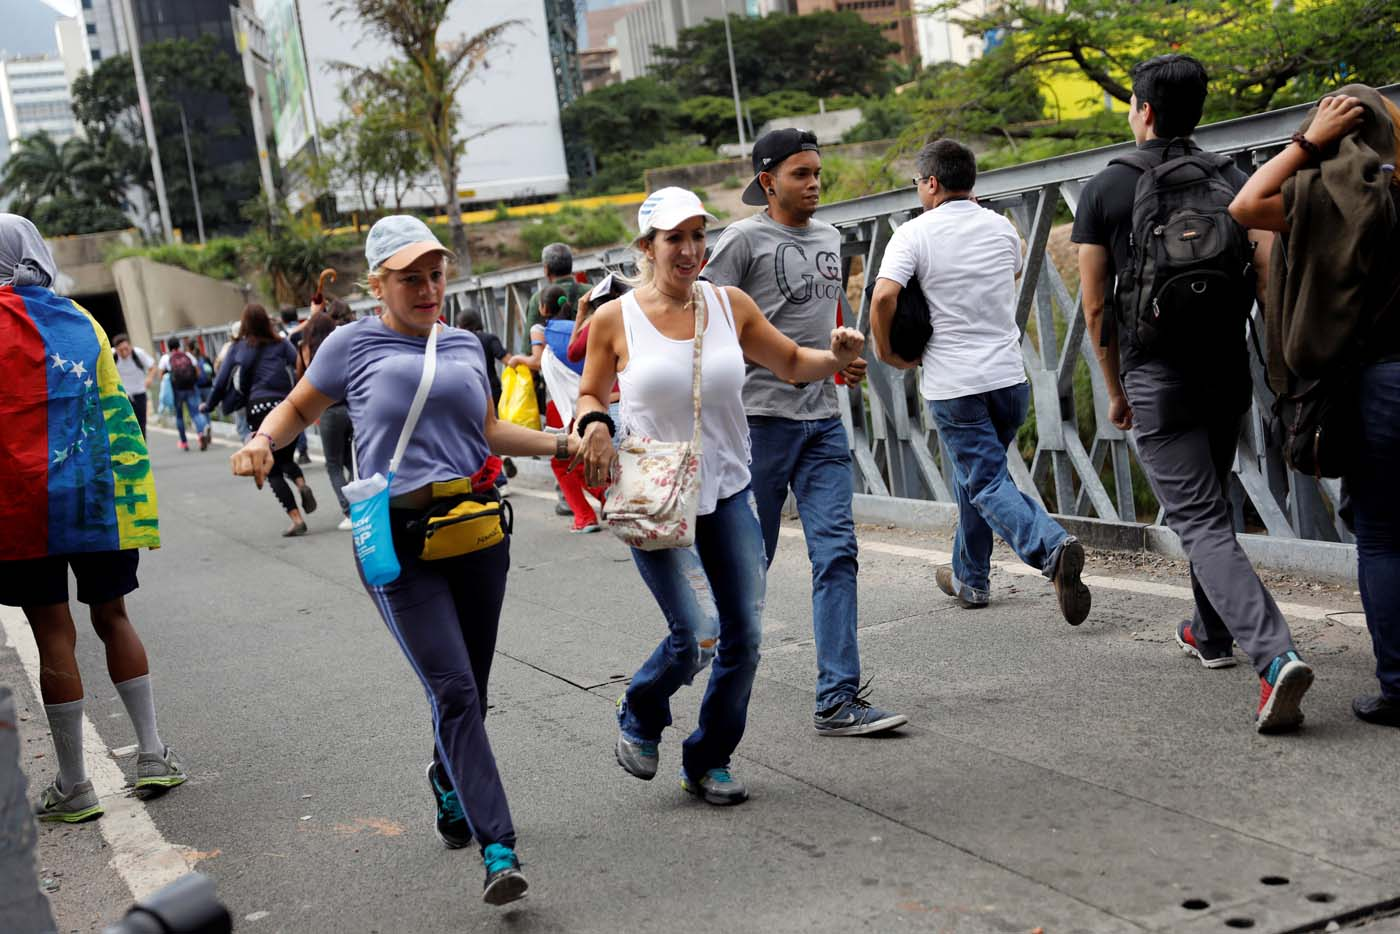 People run during a rally against Venezuelan President Nicolas Maduro's government in Caracas, Venezuela, July 6, 2017. REUTERS/Andres Martinez Casares